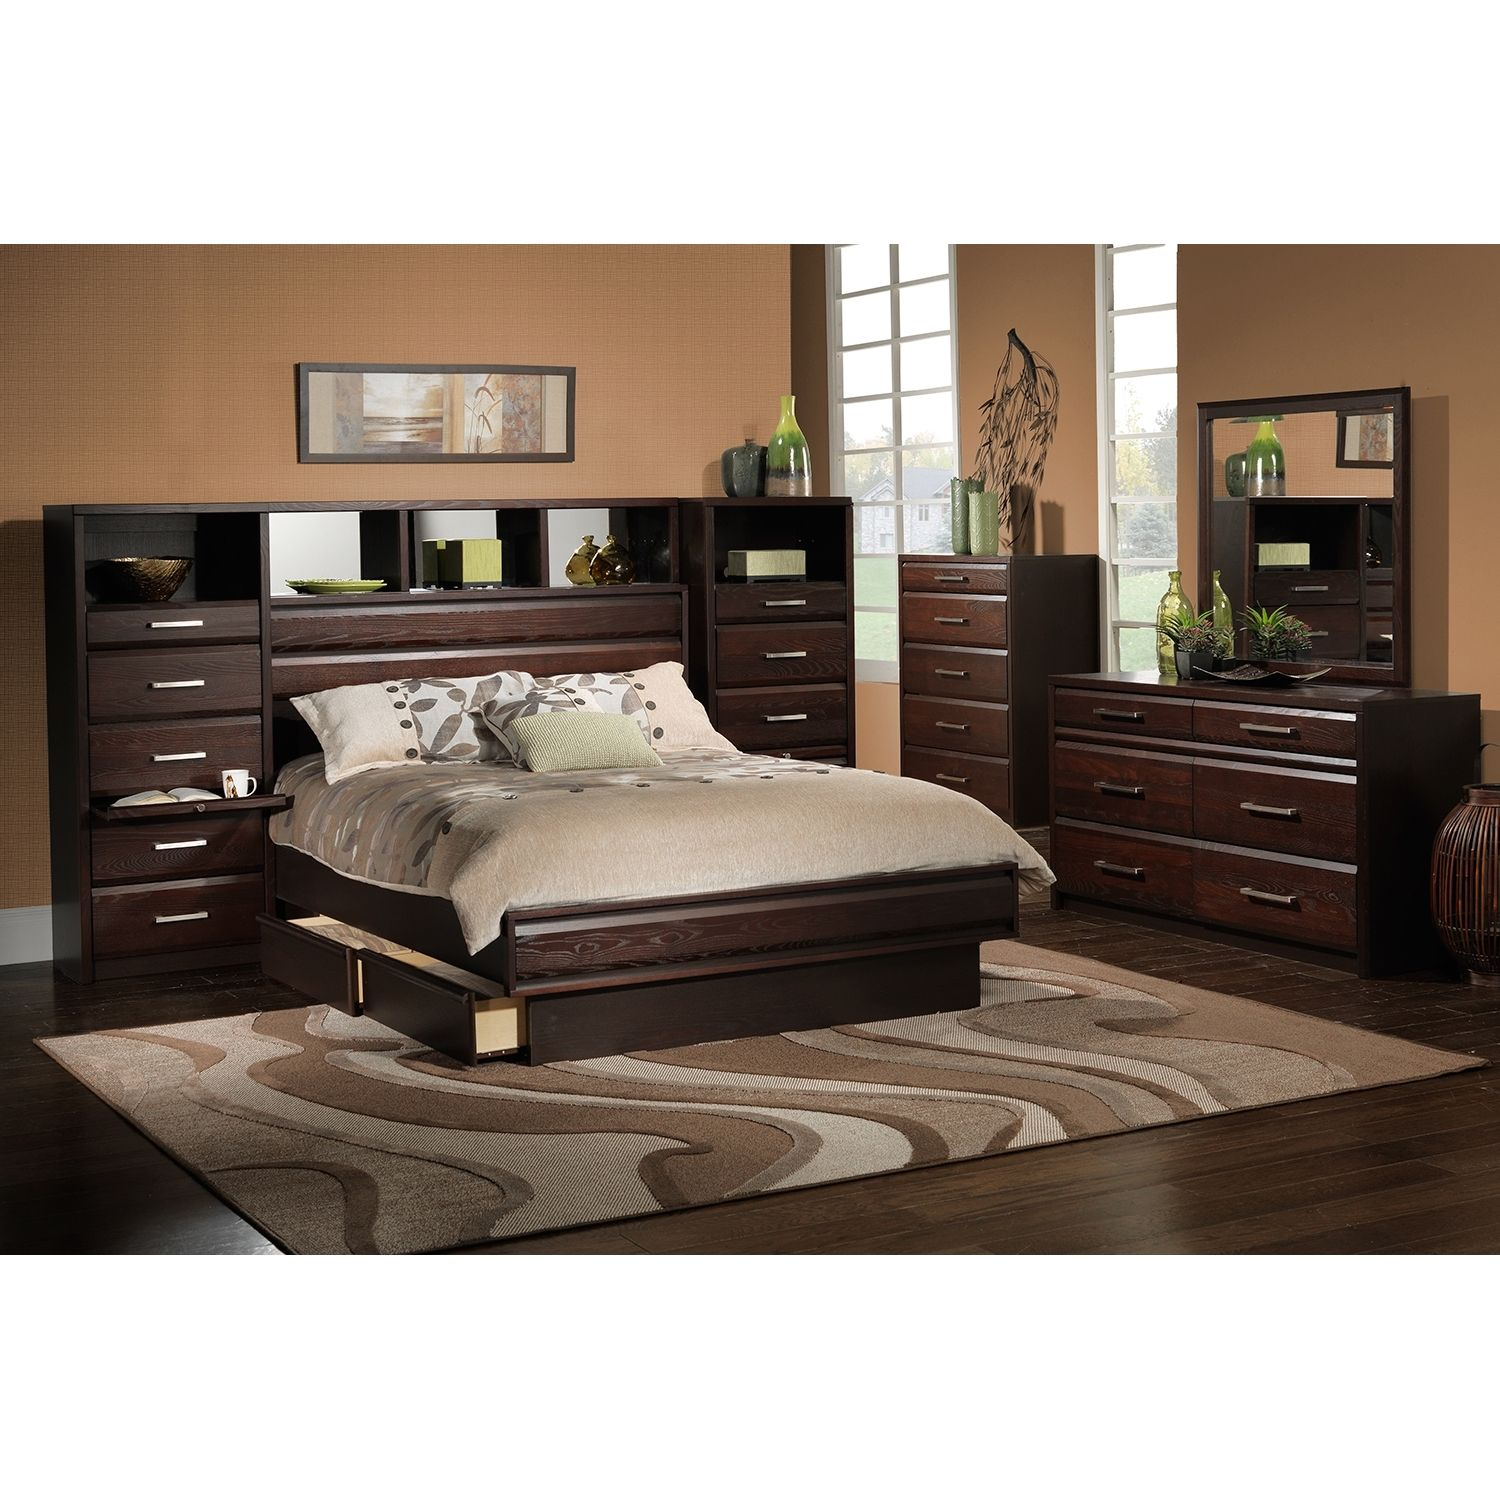 King Size Bed Wall Unit Bedroom Sets